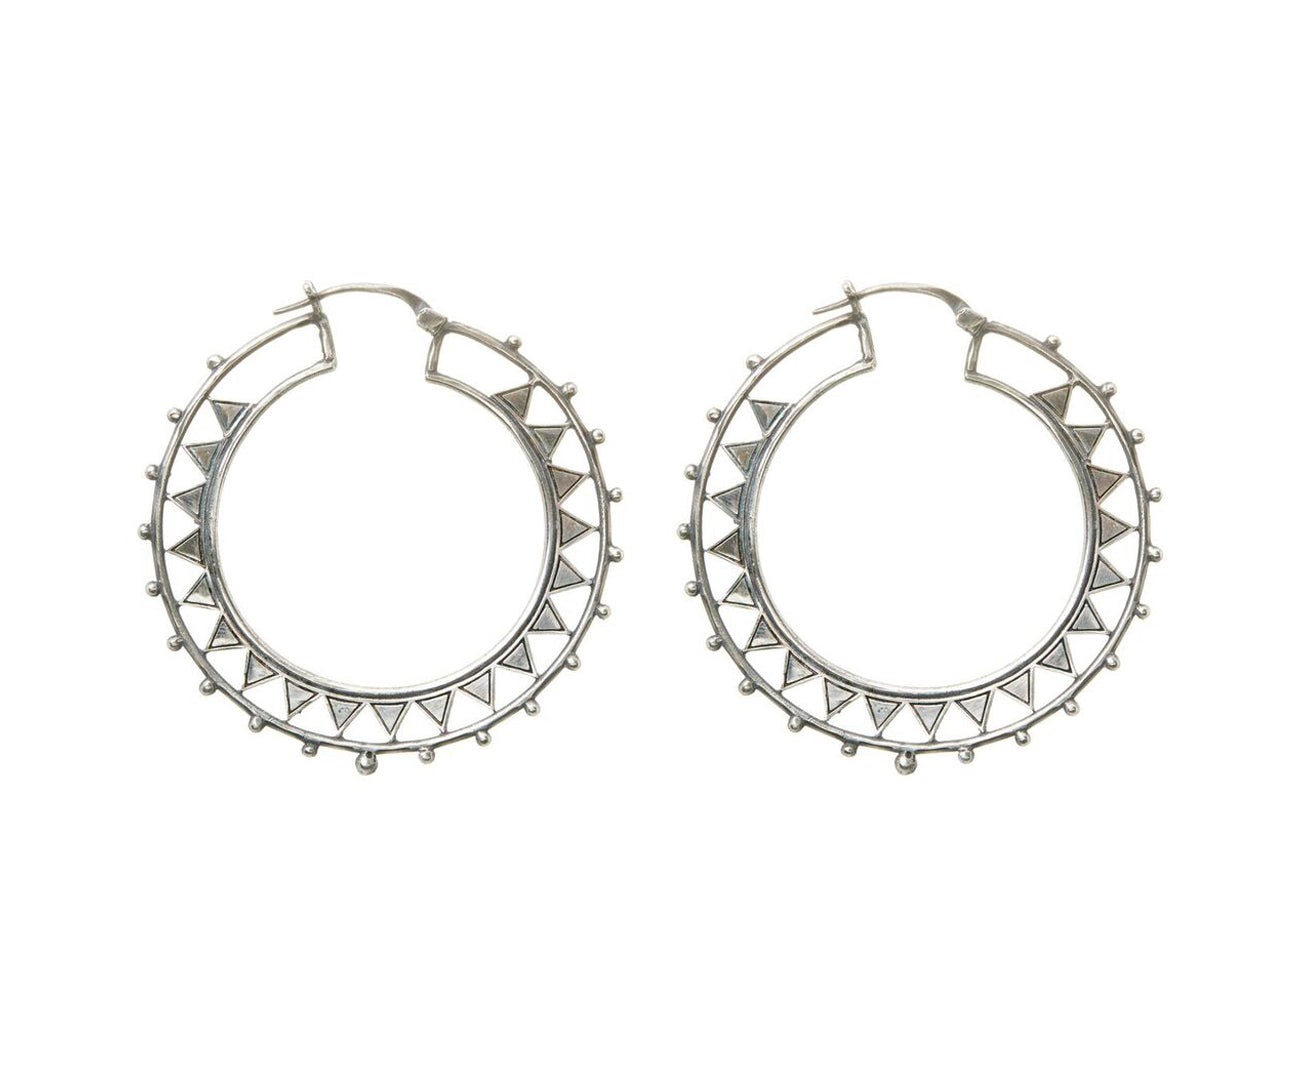 MANVIK (ENLIGHTENED ONE) EARRINGS